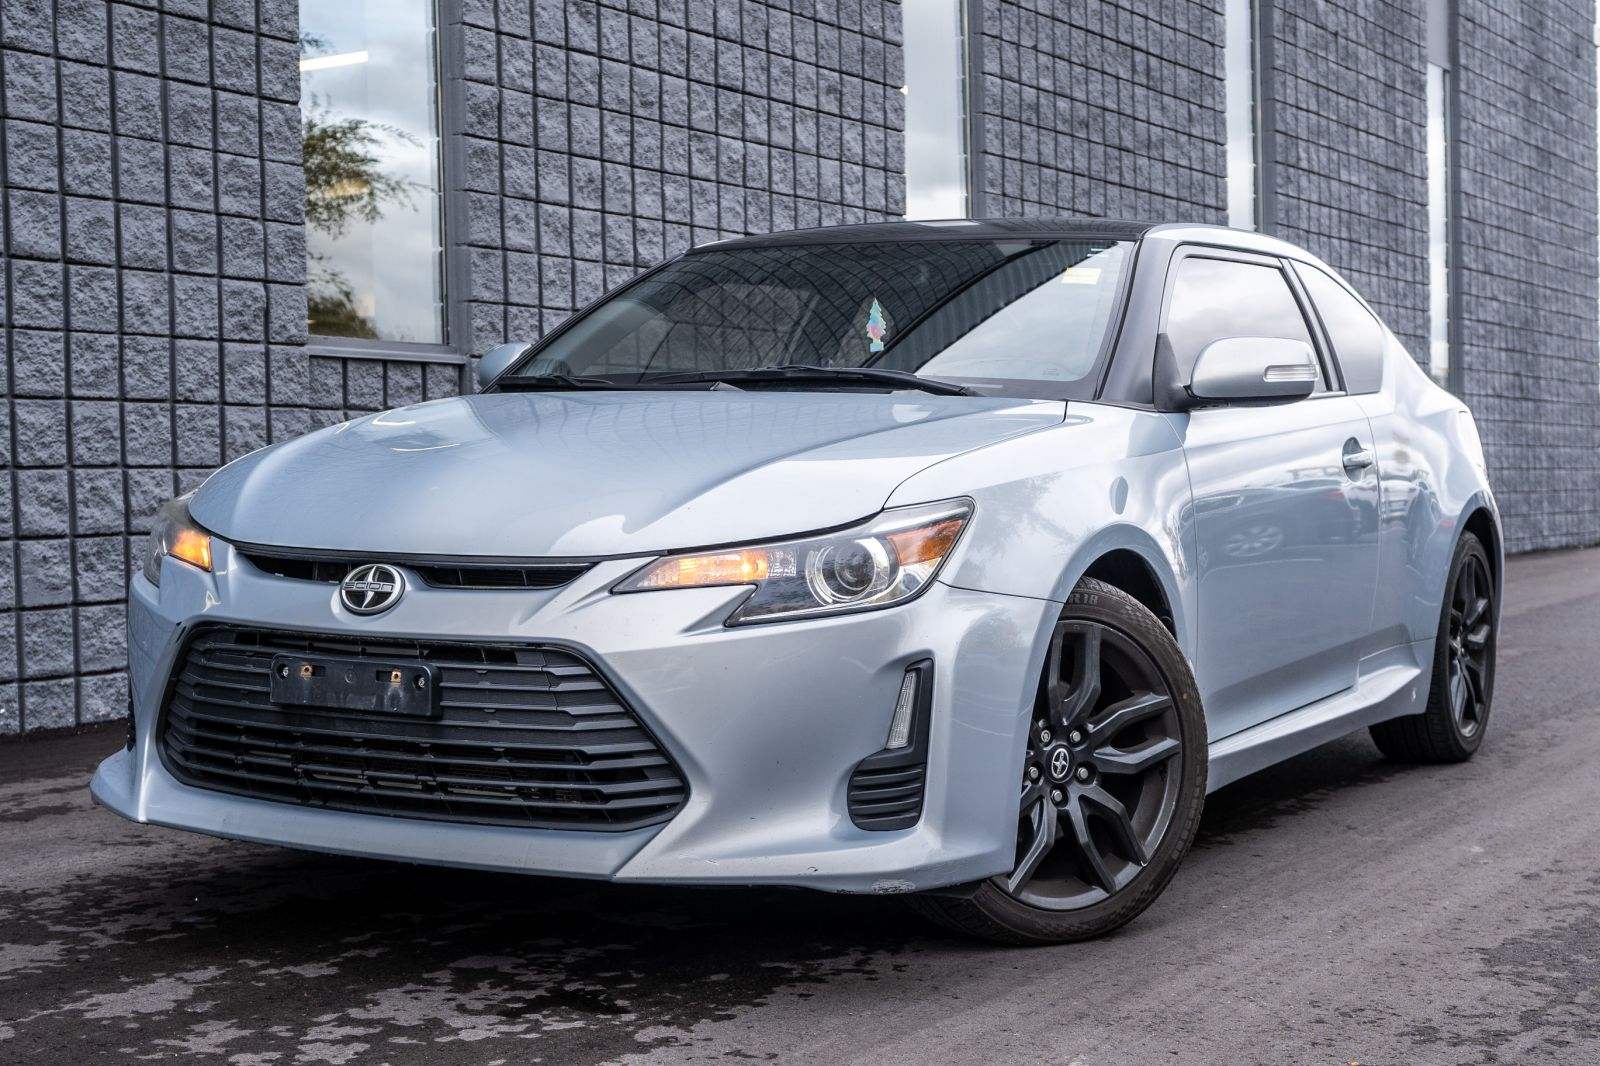 2014 Scion tC Image